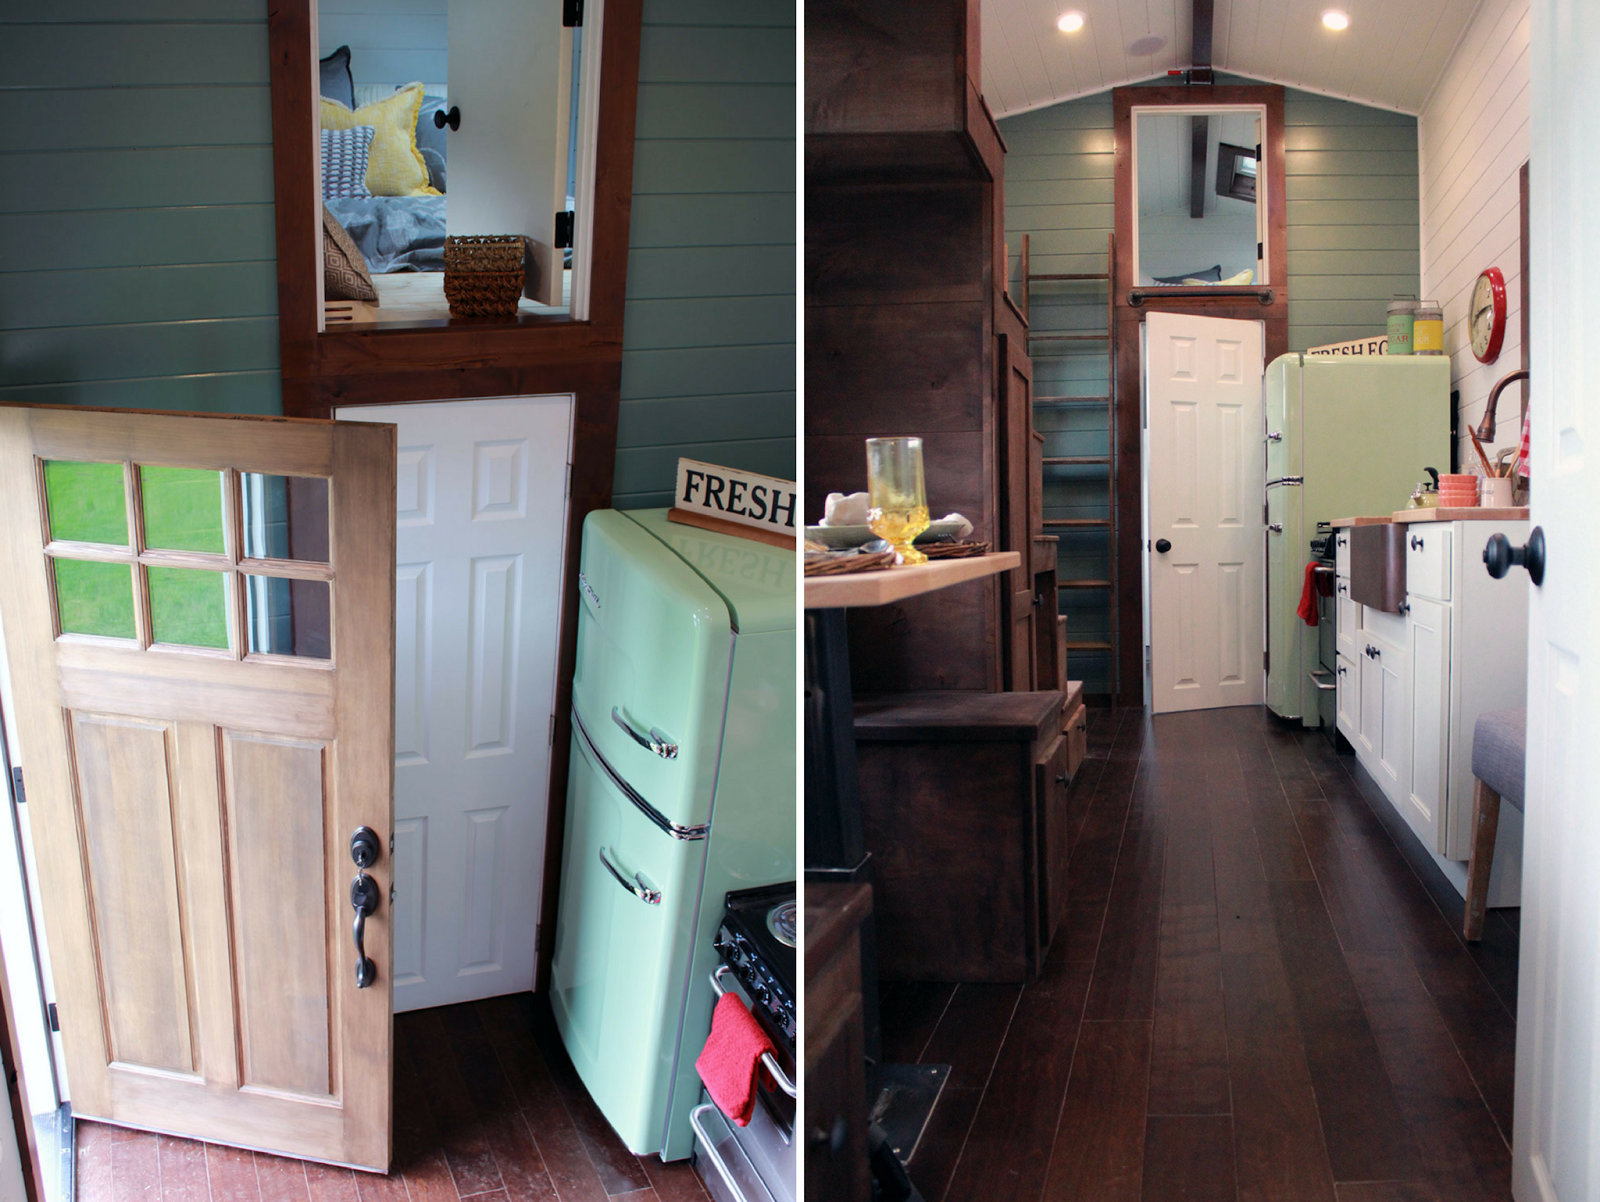 tiny house fridge. The Home Was Designed For A Military Family Of Four Who Wanted Retro-style Home. 50\u0027s Style Fridge, Classic Kettle, And Gingham Curtains Certainly Tiny House Fridge Y